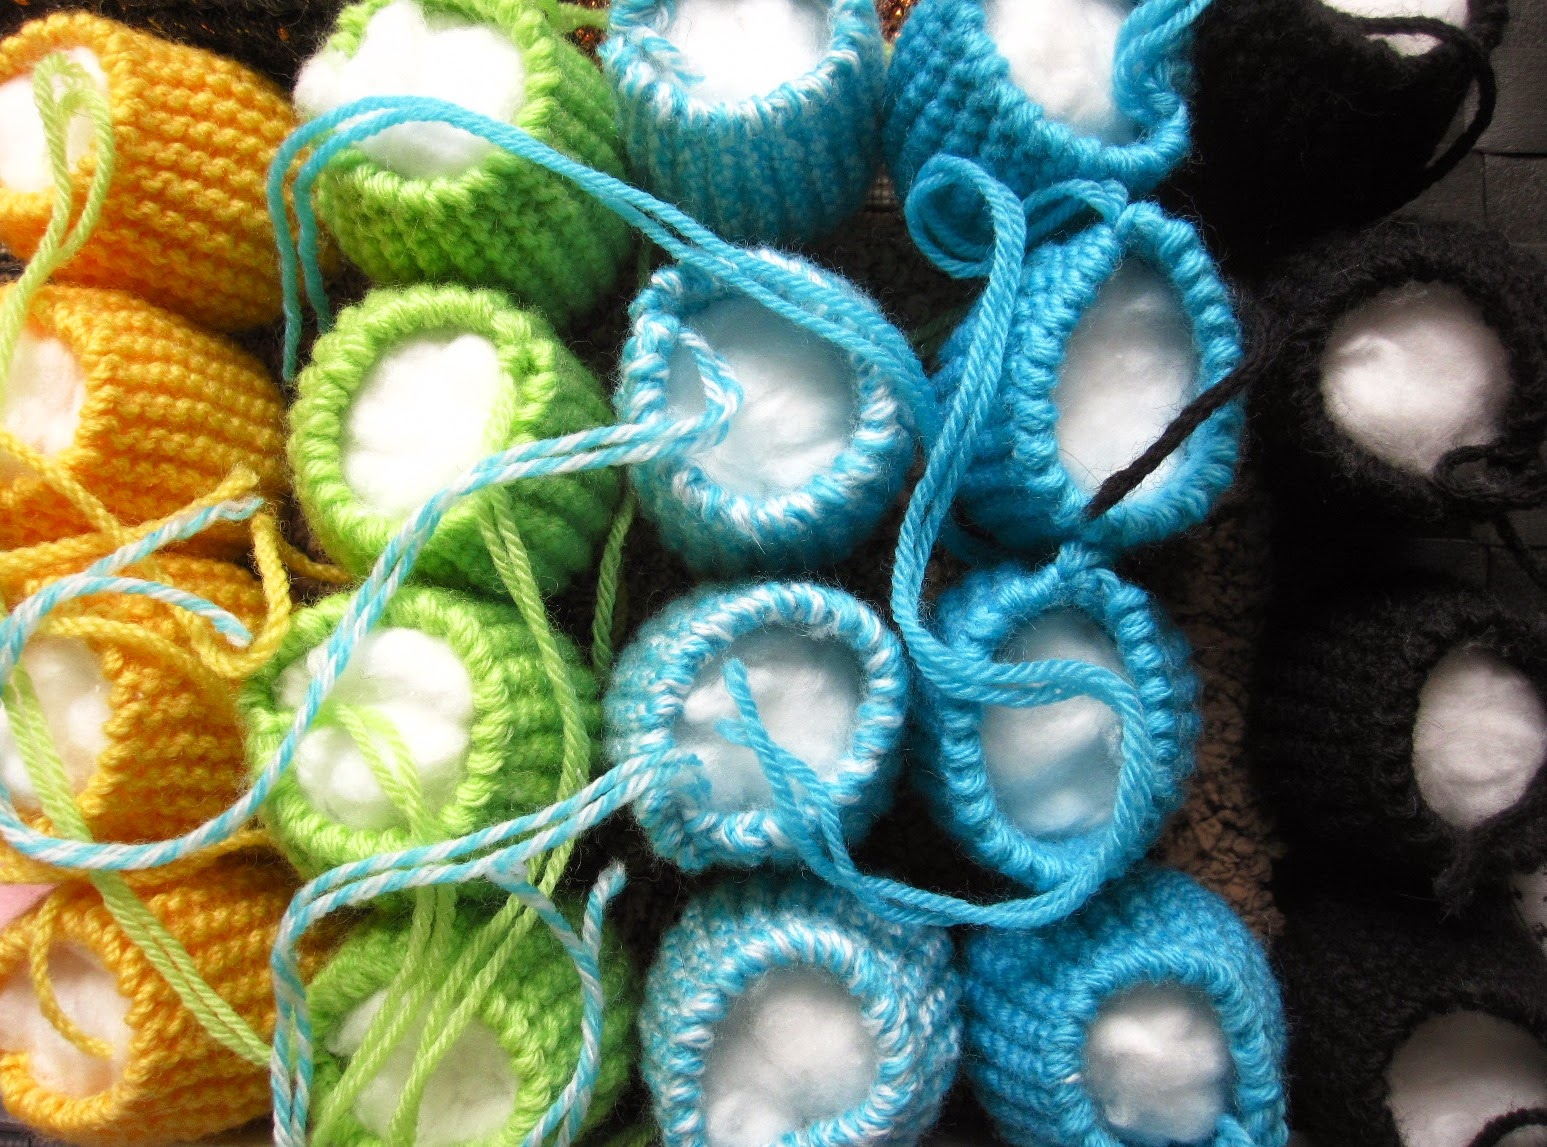 Rows of modern dolls' house miniature knitted pouffes, stuffed and awaiting sewing the tops.